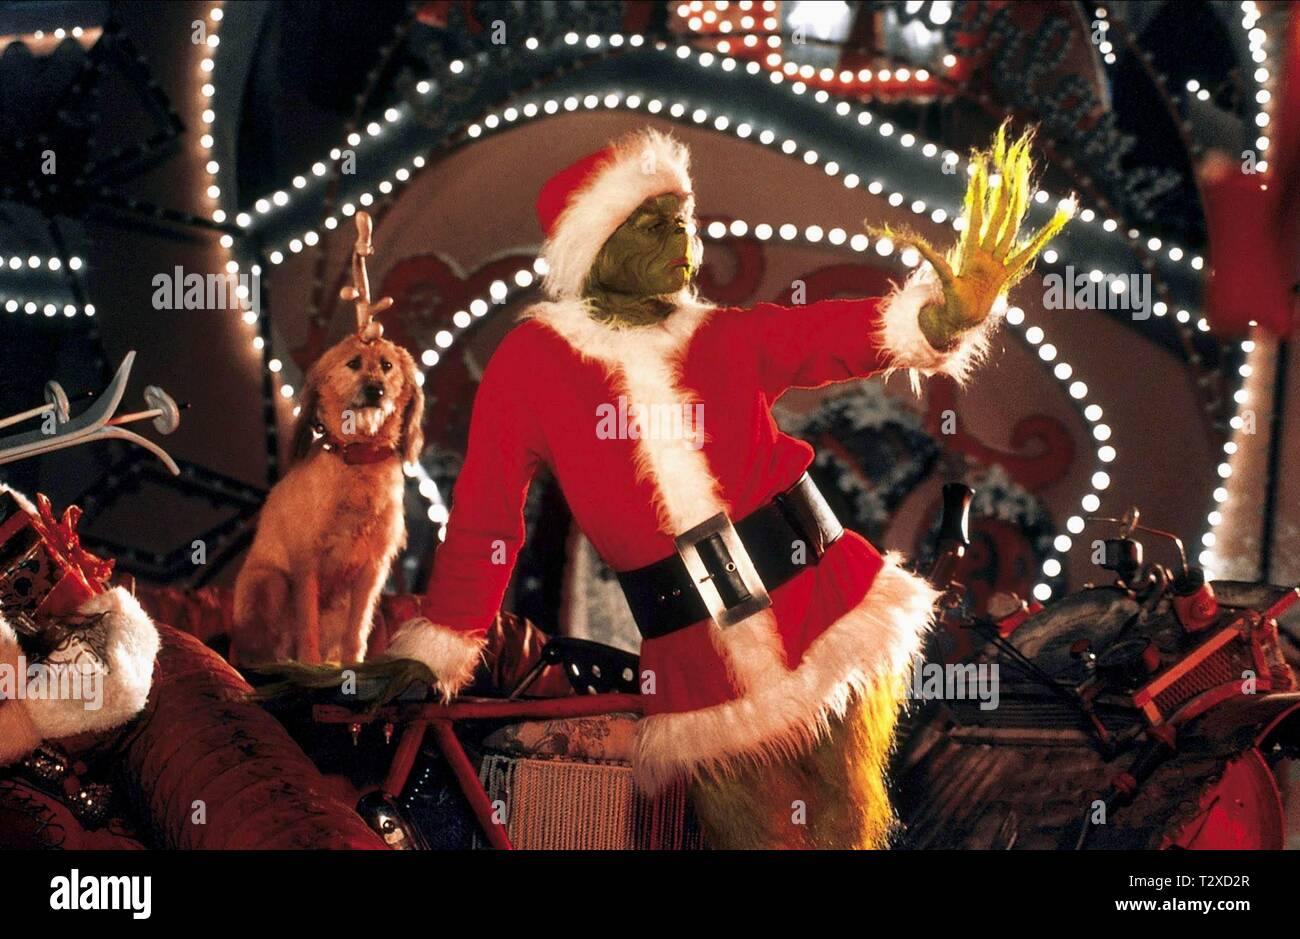 How The Grinch Stole Christmas 2000 Characters.Max The Dog Jim Carrey How The Grinch Stole Christmas